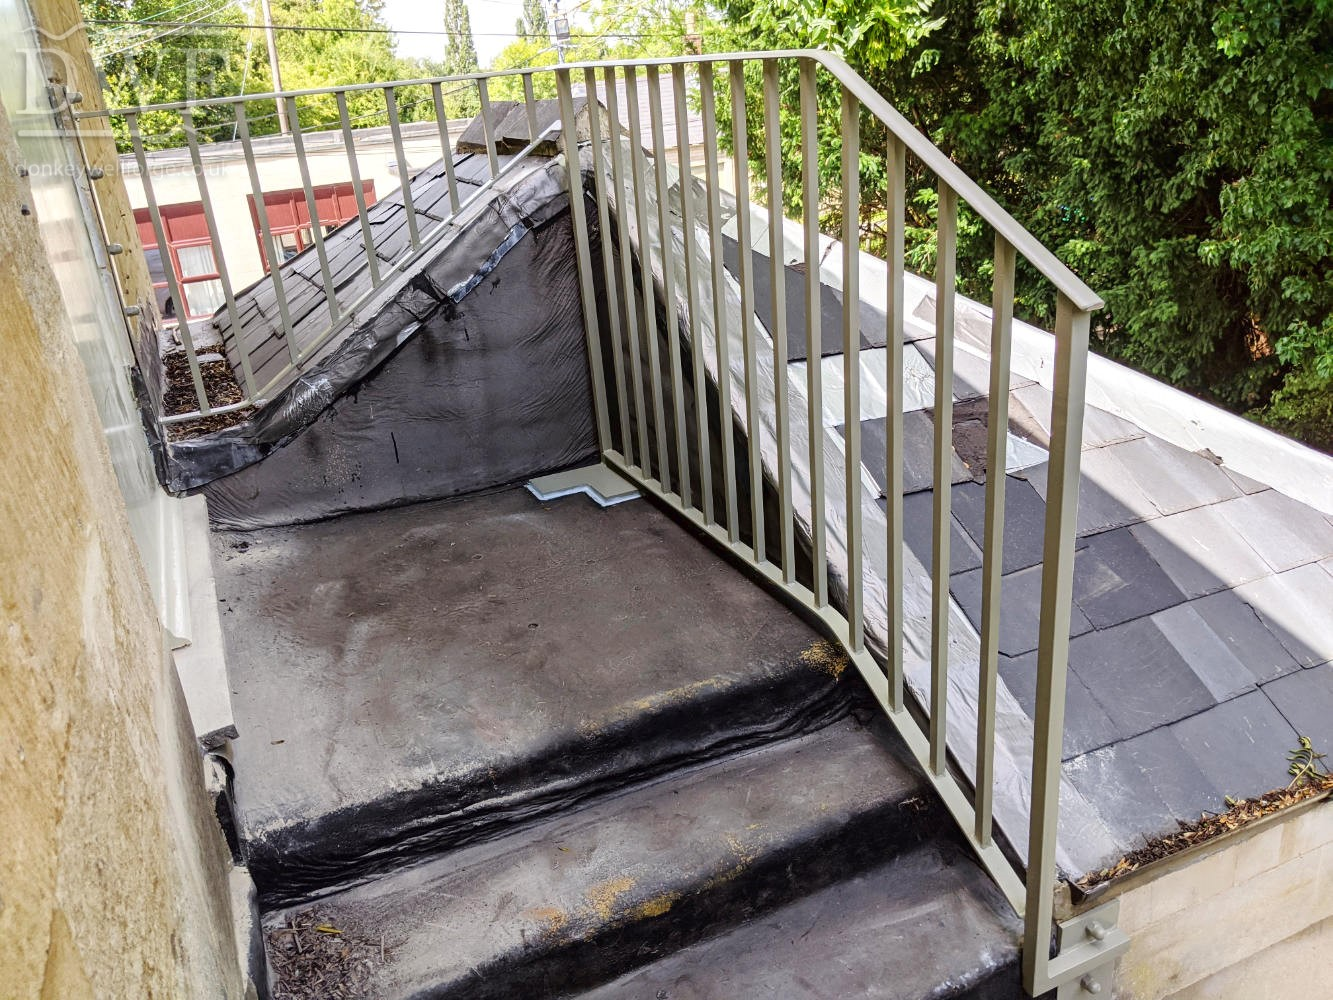 fire-escape-forged-balustrade-ironwork-handrail